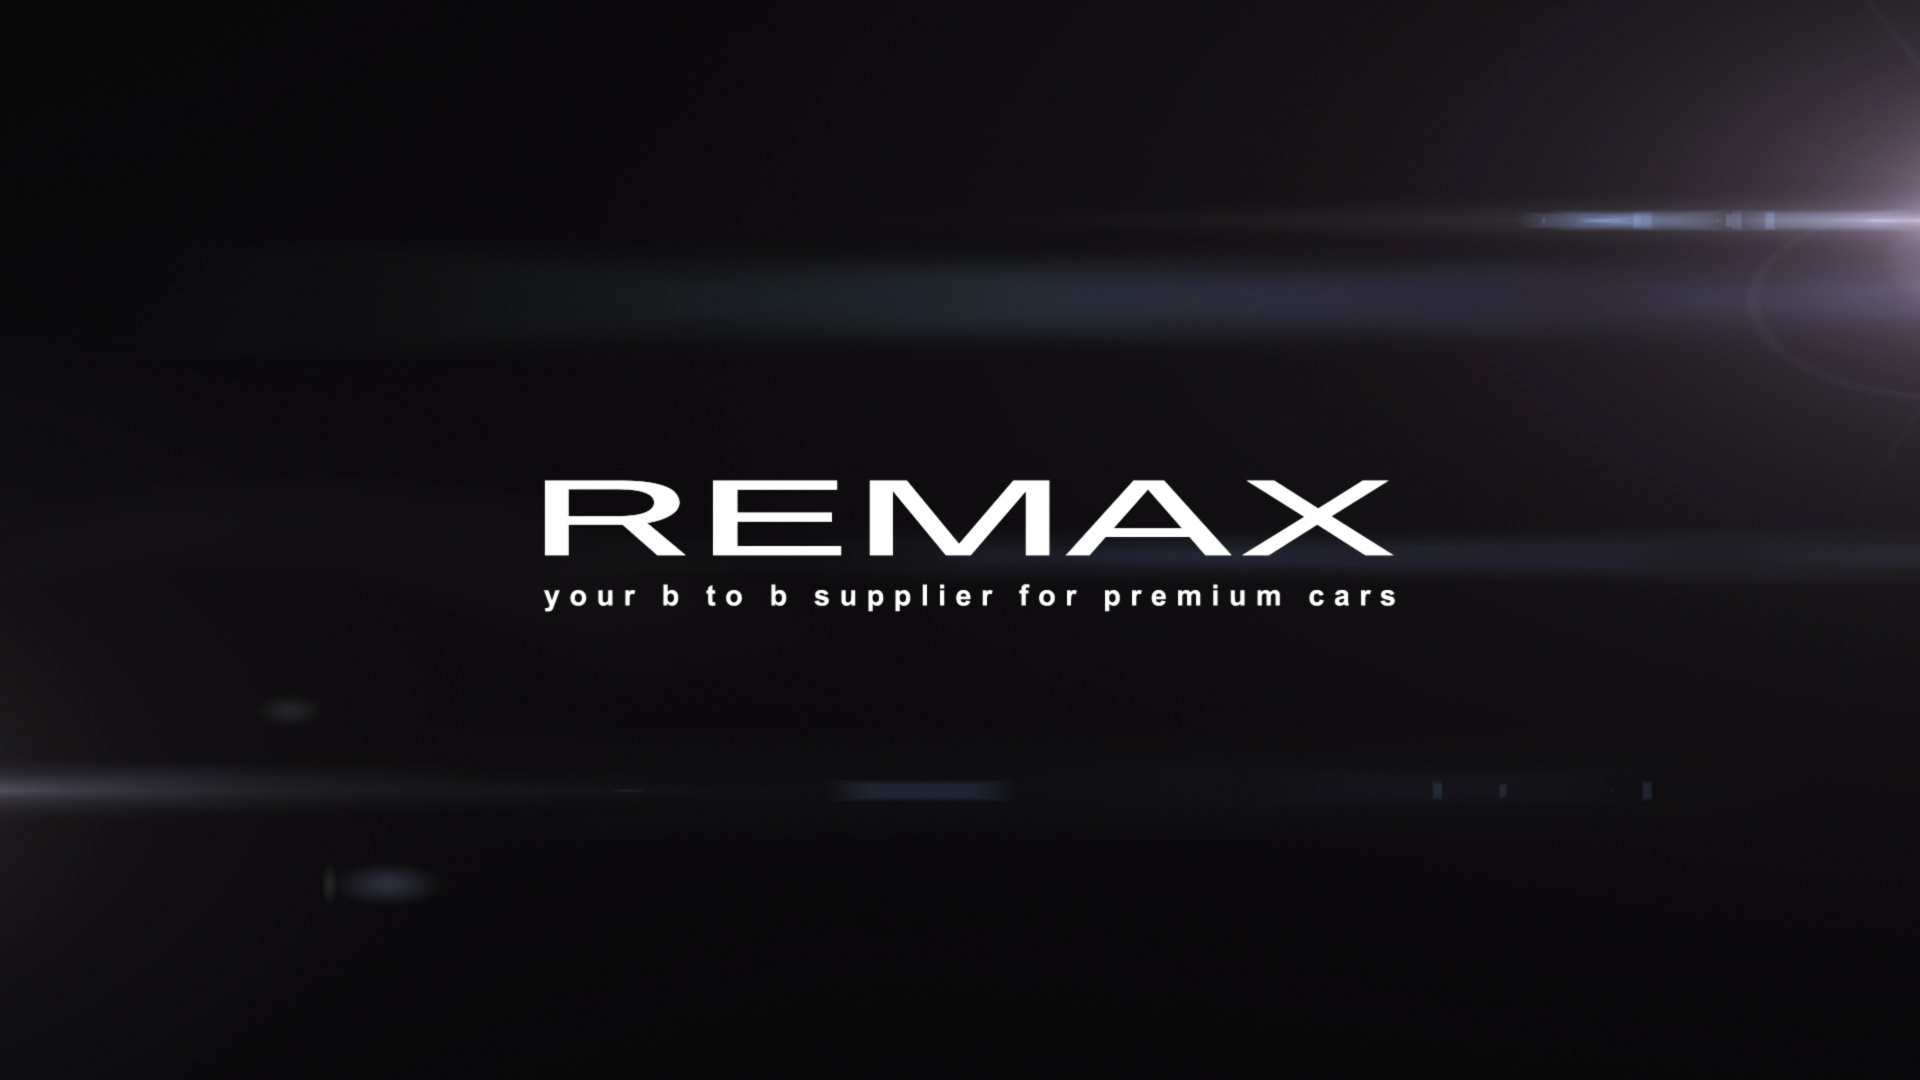 REMAX your b to b supplier for premium cars